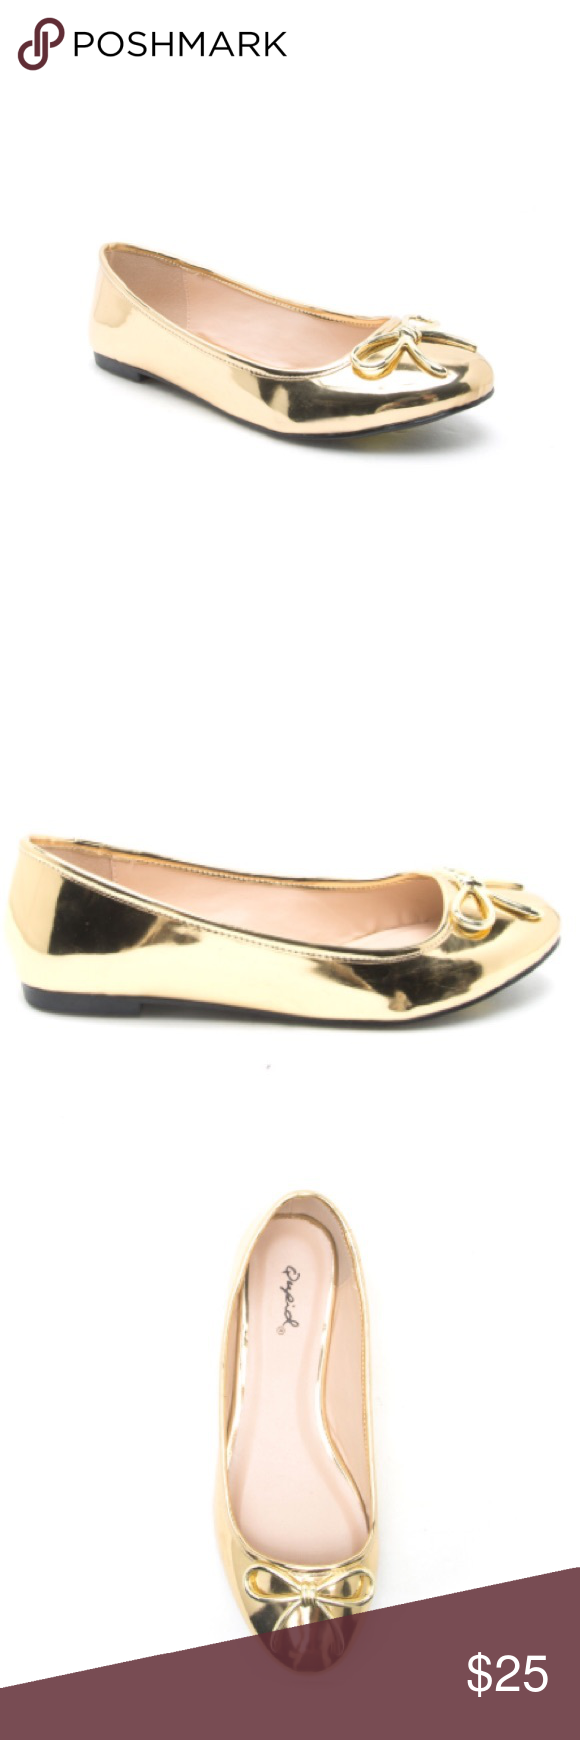 Gold Flats Retail, not re-sale. Gold flats with lace. All man made materials. Qupid Shoes Flats & Loafers